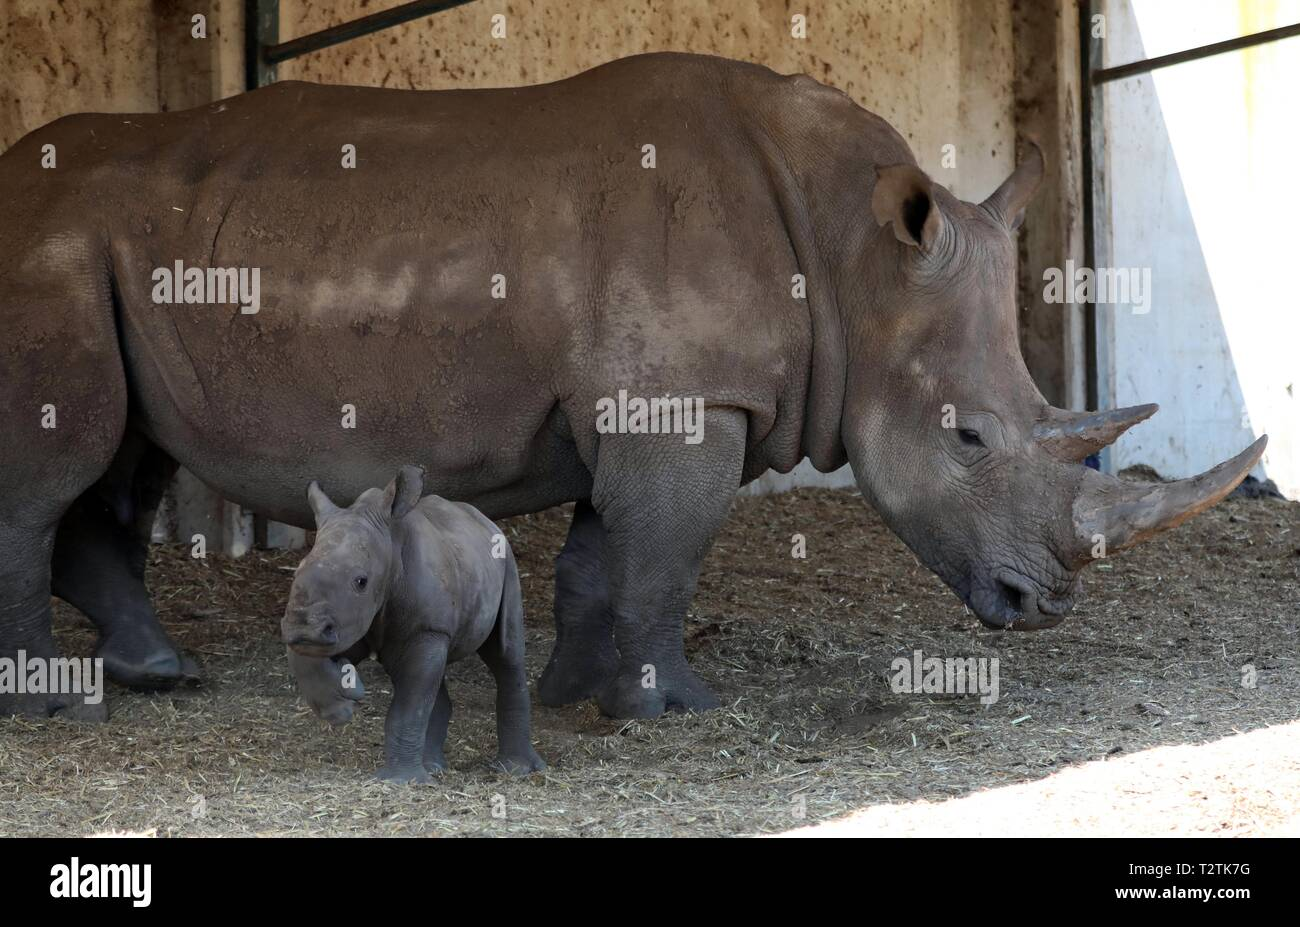 Ramat Gan, Israel. 3rd Apr, 2019. The newly born female southern white rhinoceros and its mother are seen at the Safari Park in Ramat Gan, Israel, April 3, 2019. Credit: JINI/Gideon Markowicz/Xinhua/Alamy Live News - Stock Image